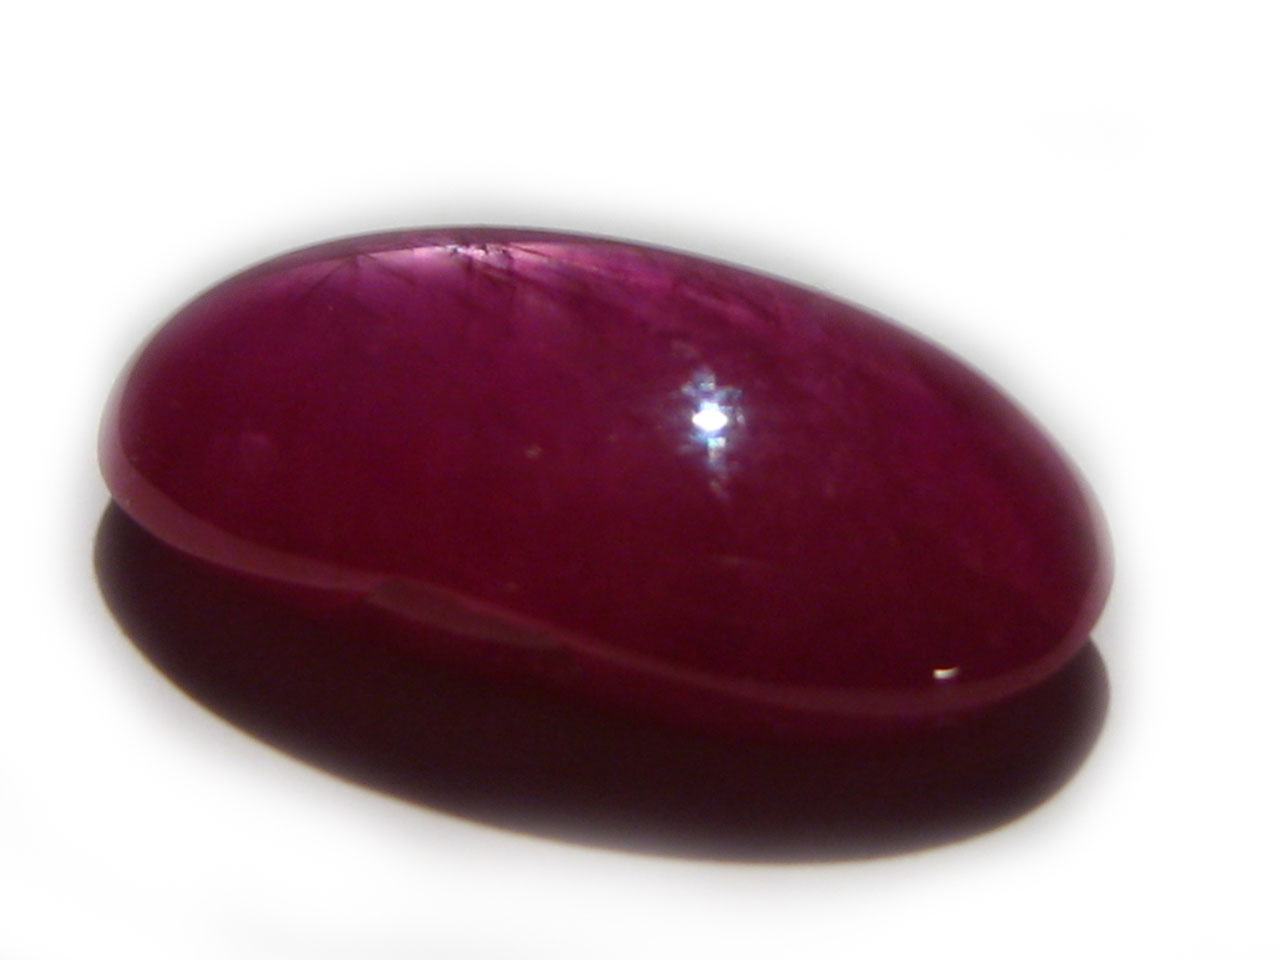 AGTA Certified Burma Star Ruby 10.24carat  17.1x9.2x5.9mm